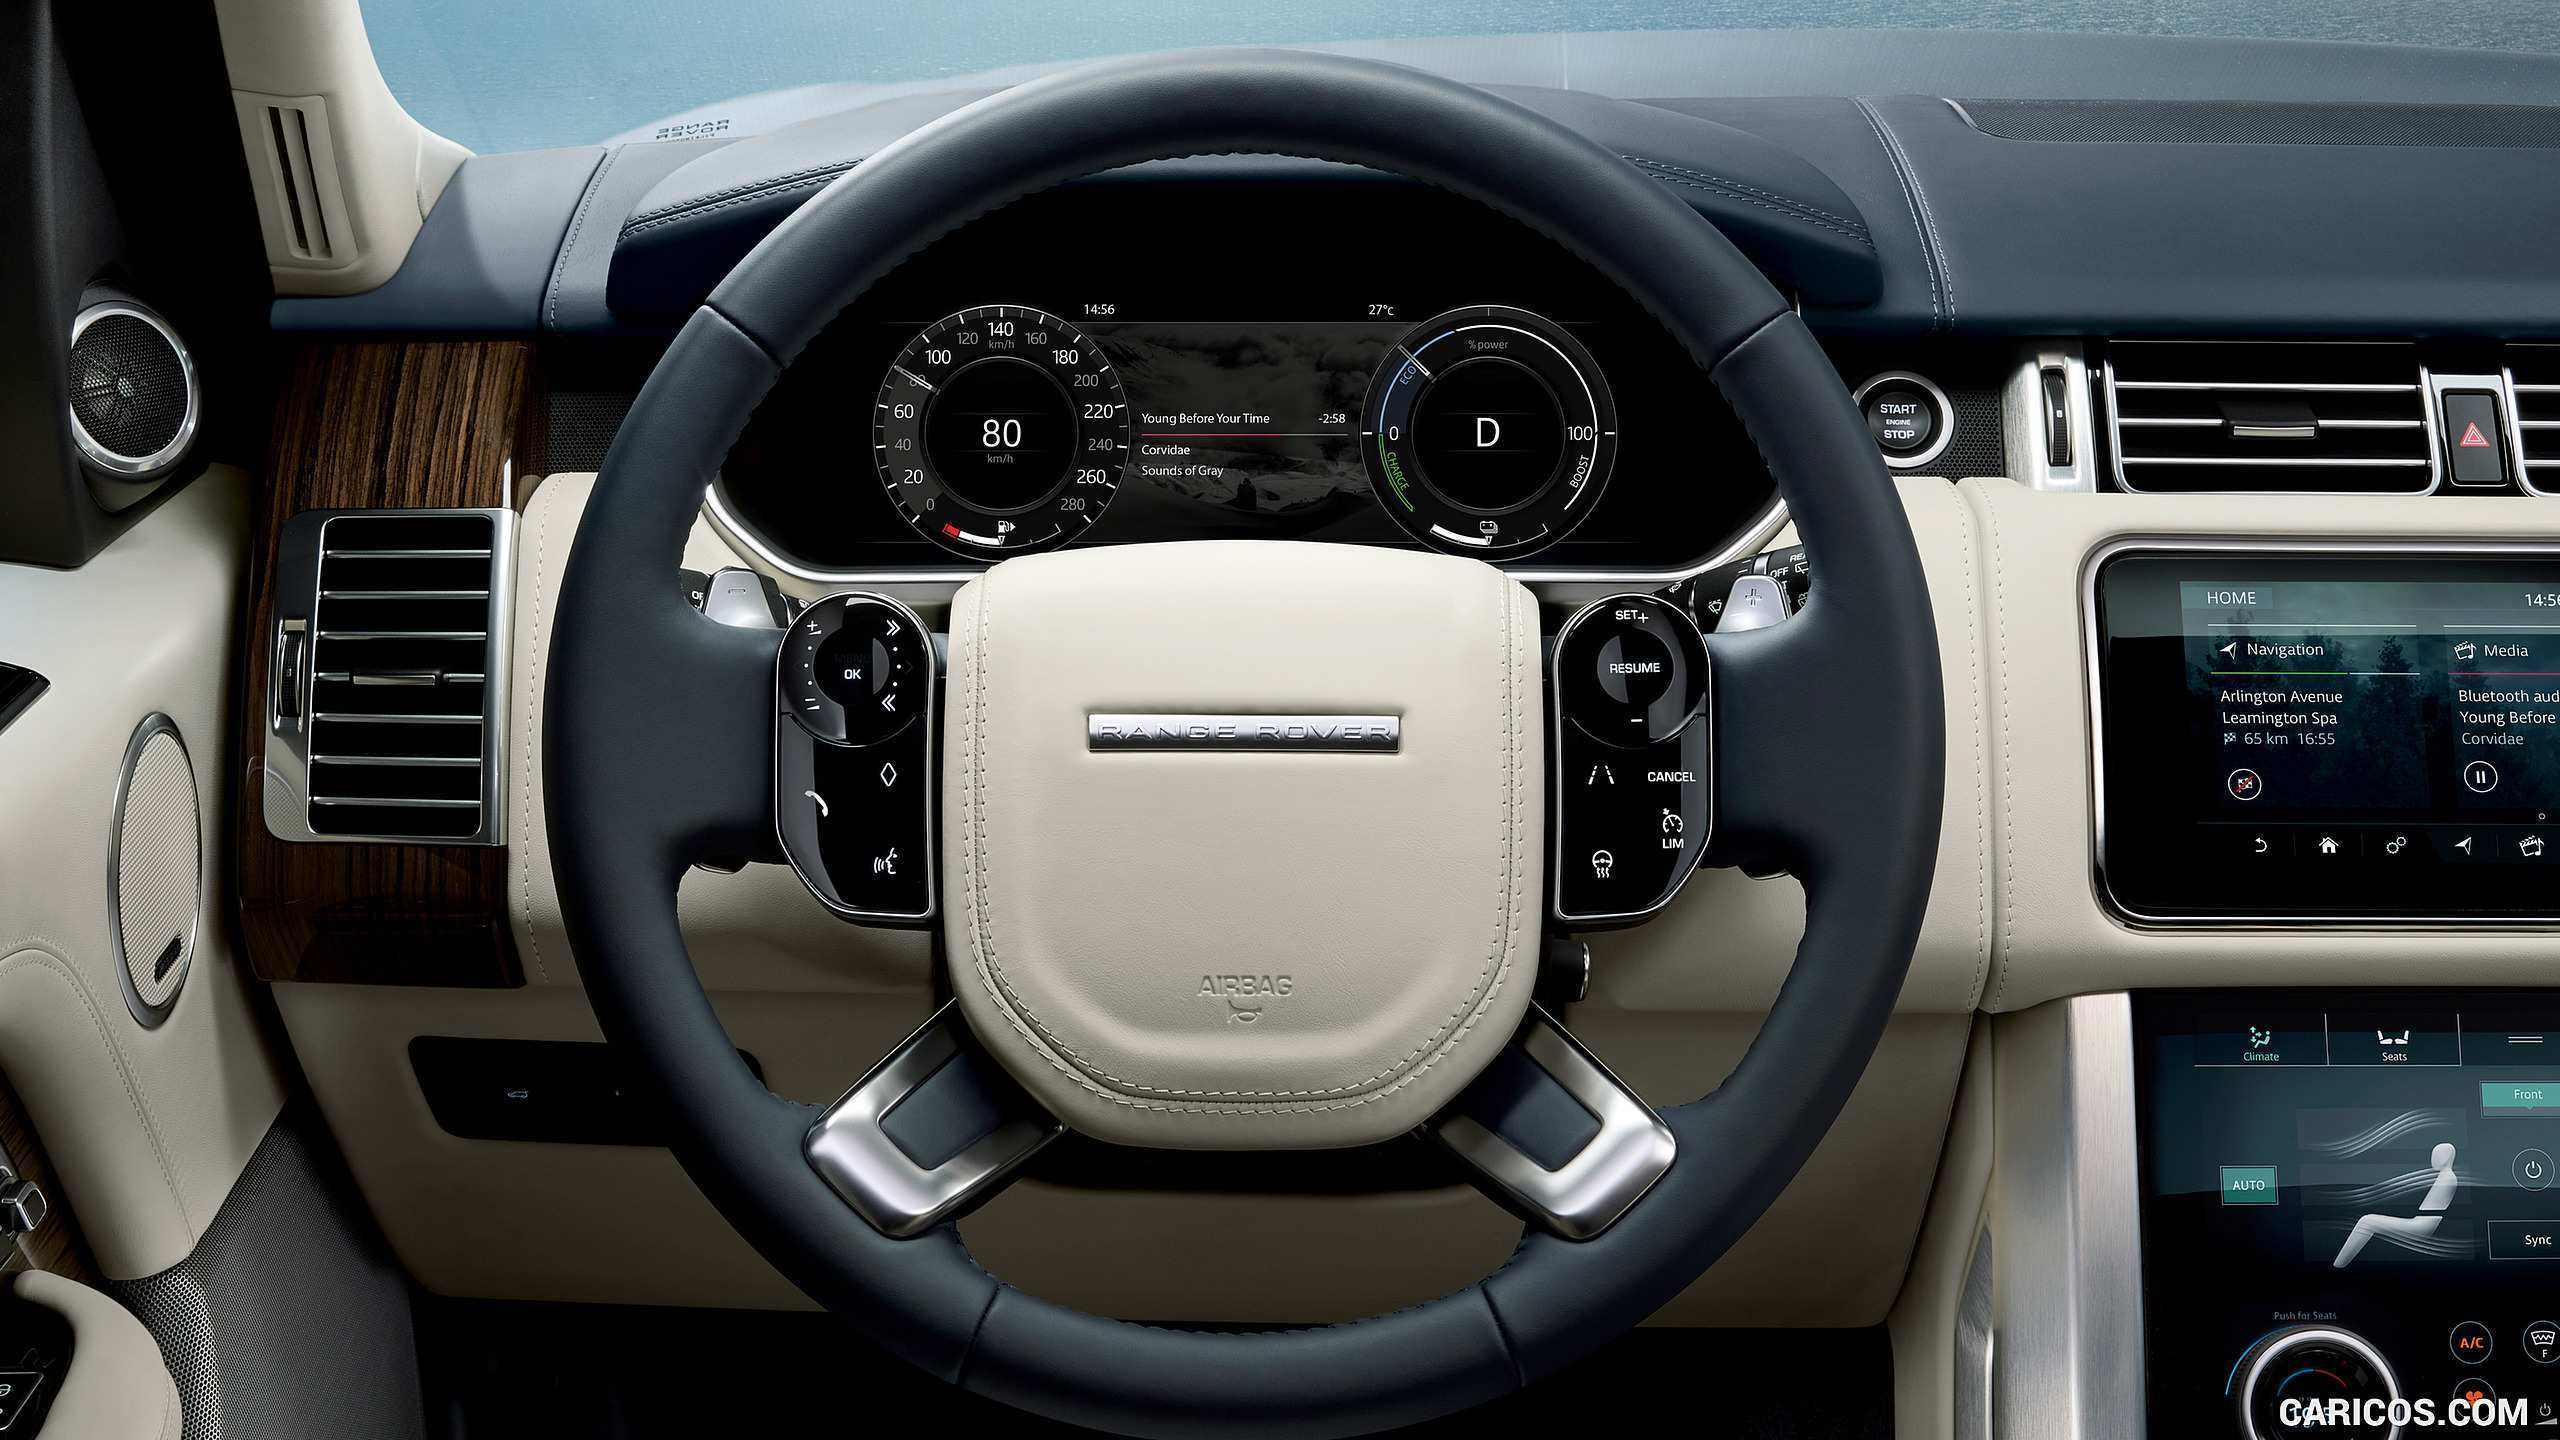 46 All New 2019 Land Rover Interior Pricing for 2019 Land Rover Interior